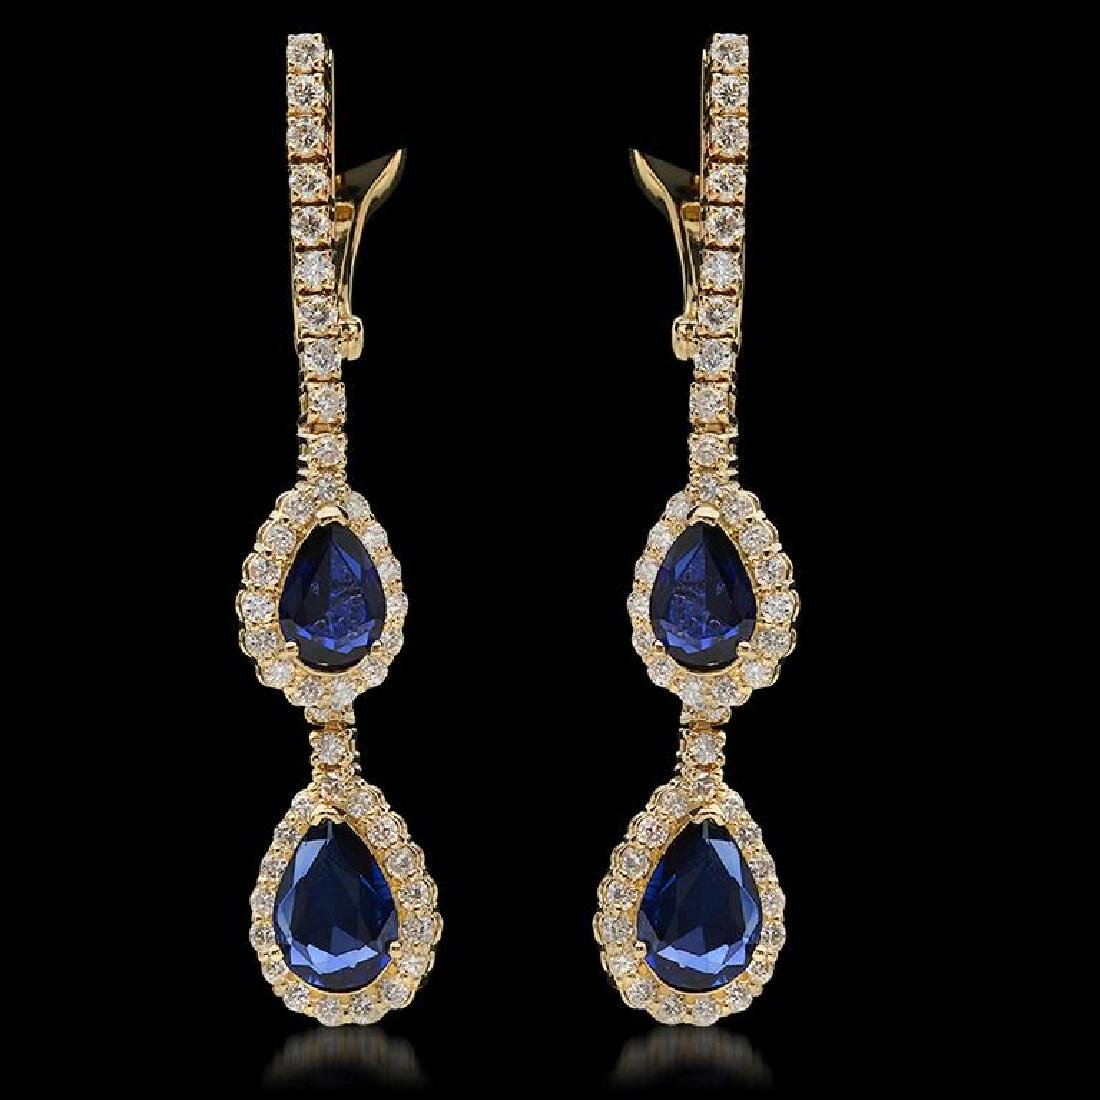 14K Gold 2.60ct Sapphire & 1.75ct Diamond Earrings